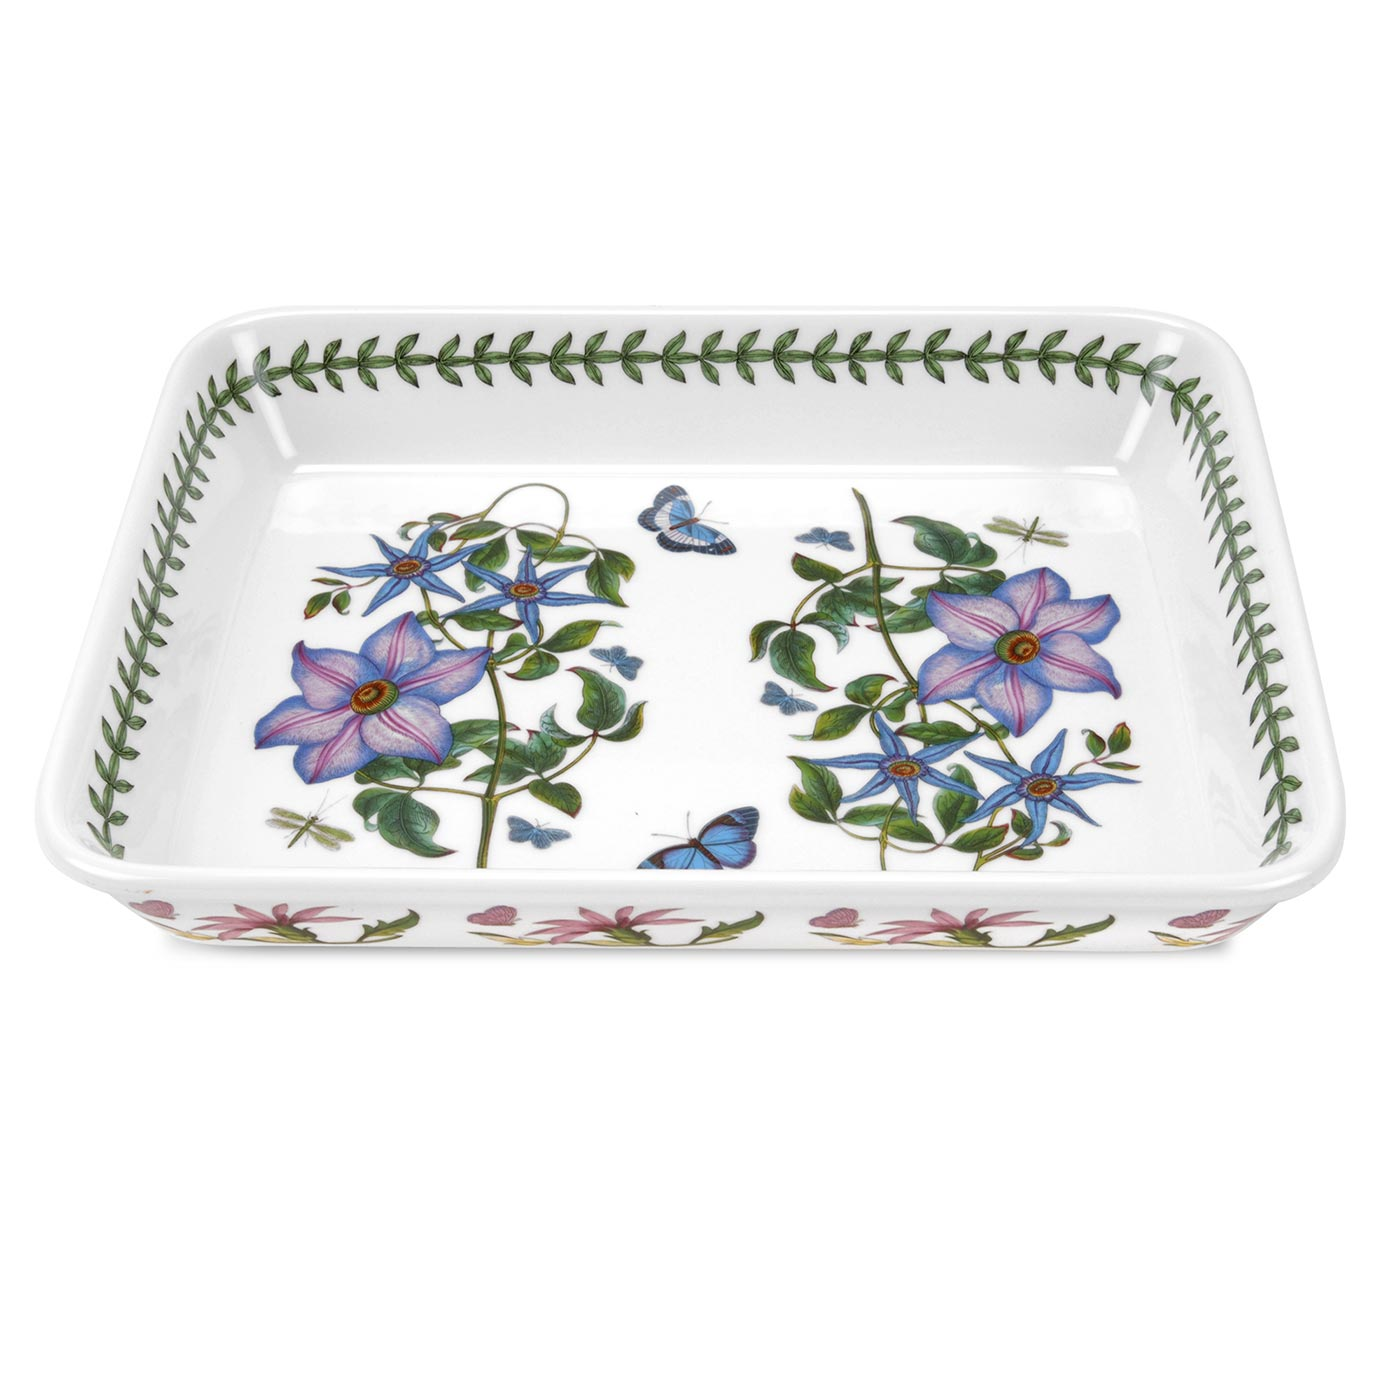 Portmeirion Botanic Garden Designs portmeirion botanic garden is rimmed round china with a multi motif floral design and brightly colored butterflies bees or dragonflies at the center Giftware Cookware